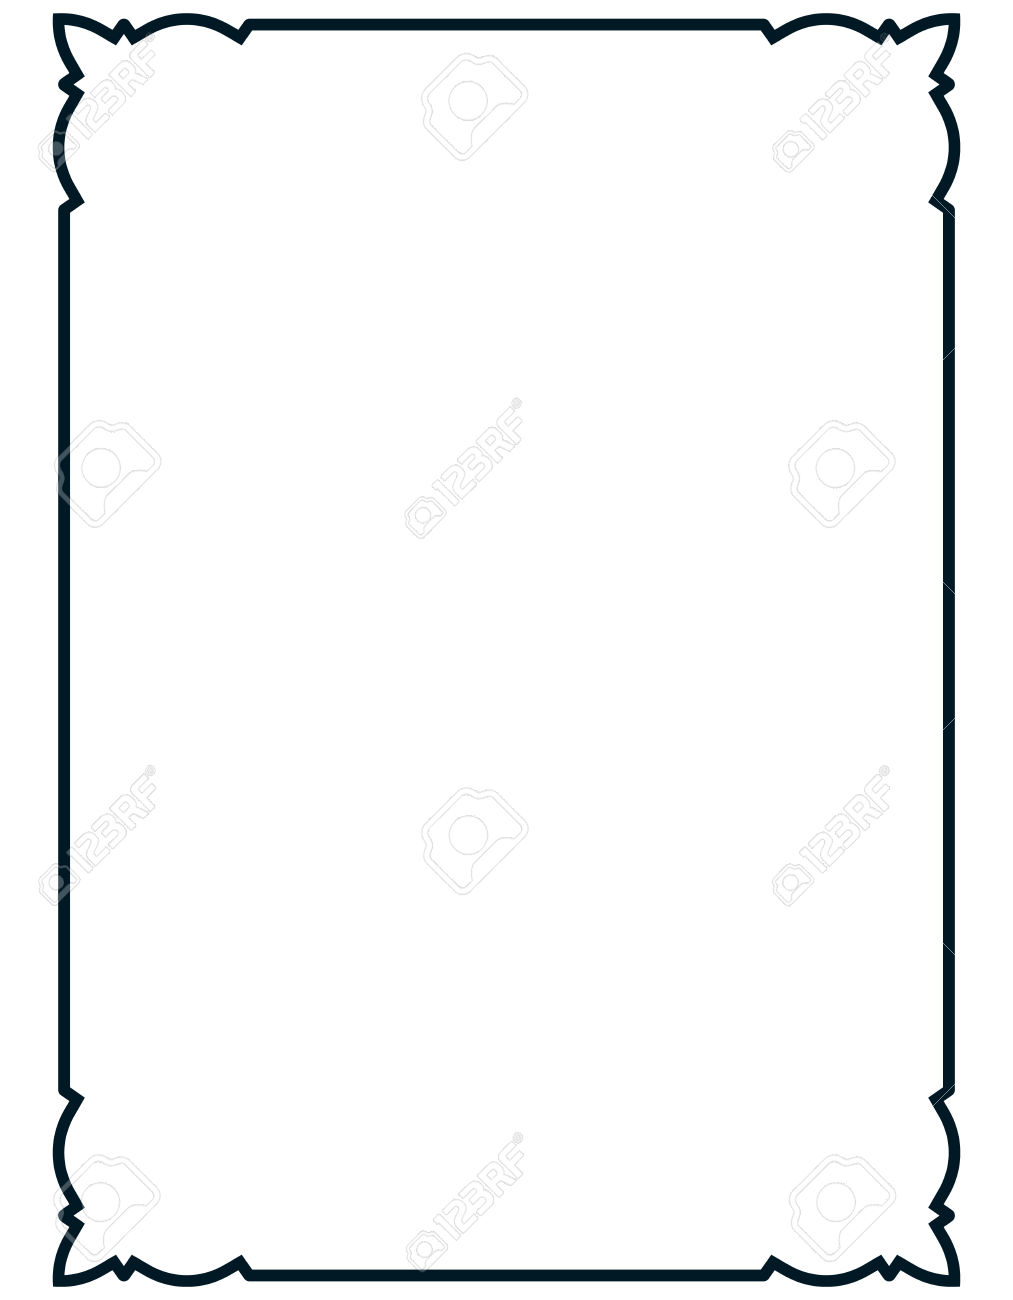 1013x1300 Elegant Page Borders Clipart